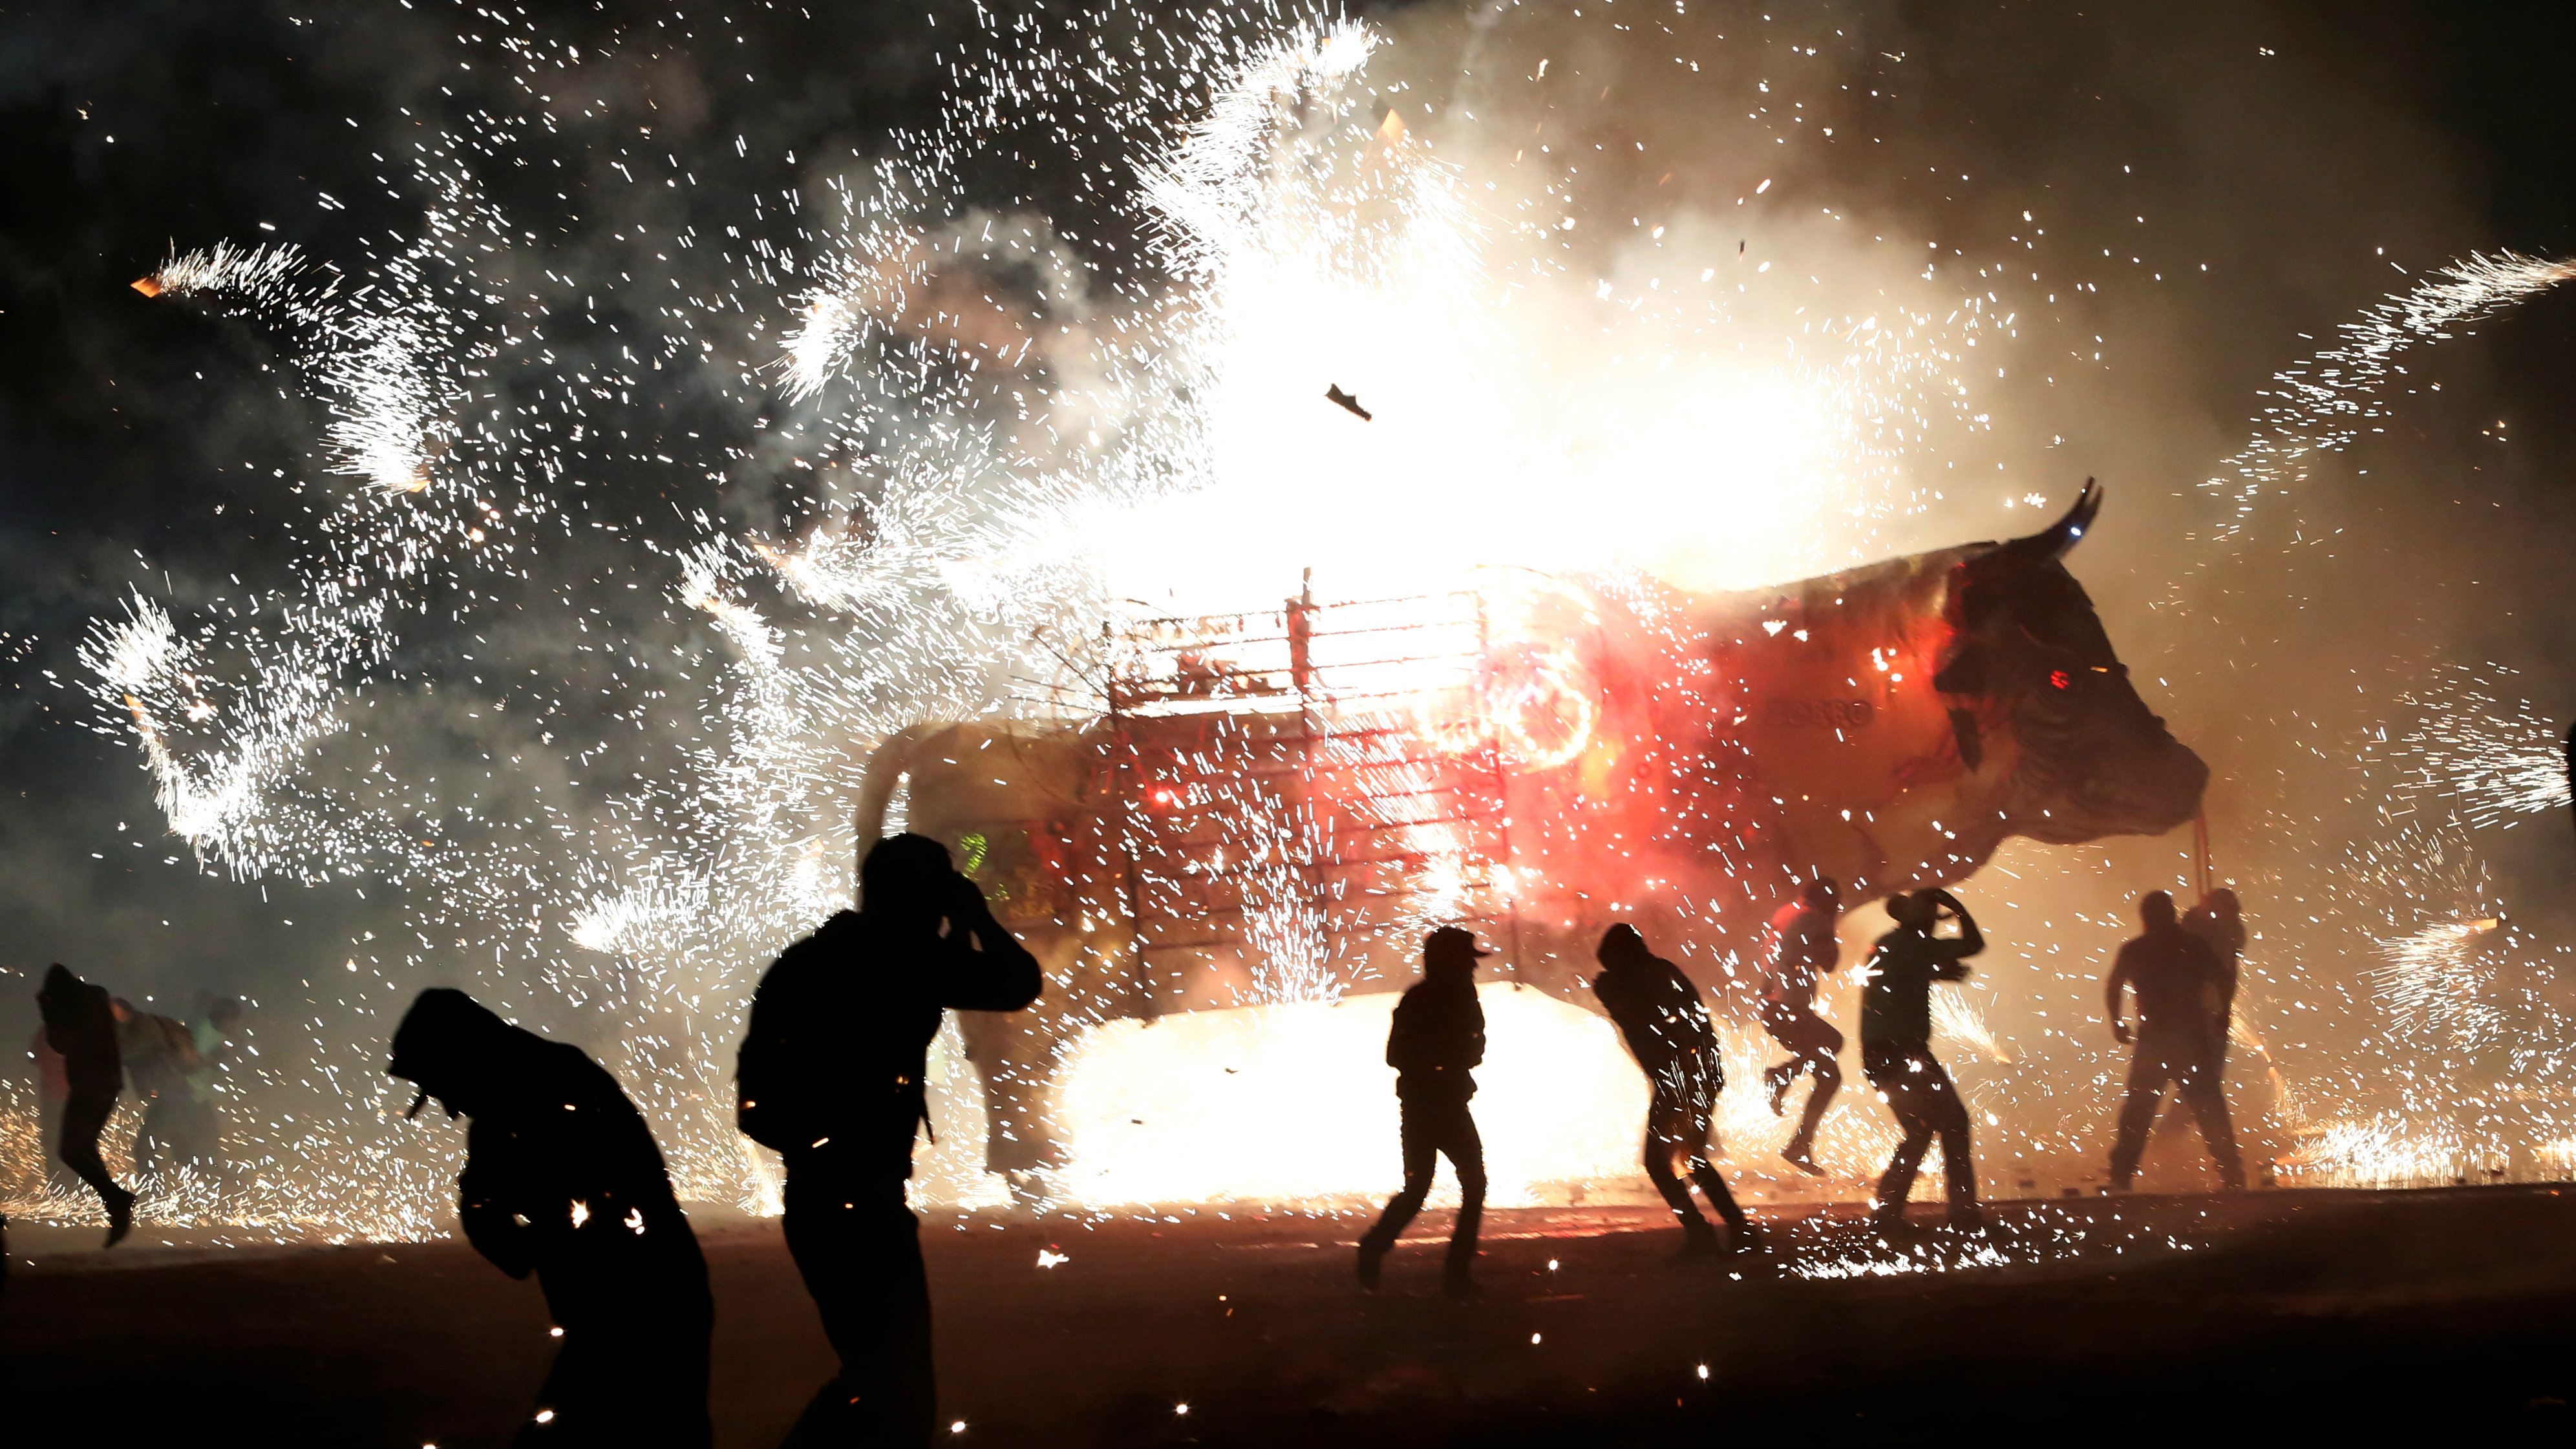 fireworks exploding from a traditional bull known as Torito in Mexico